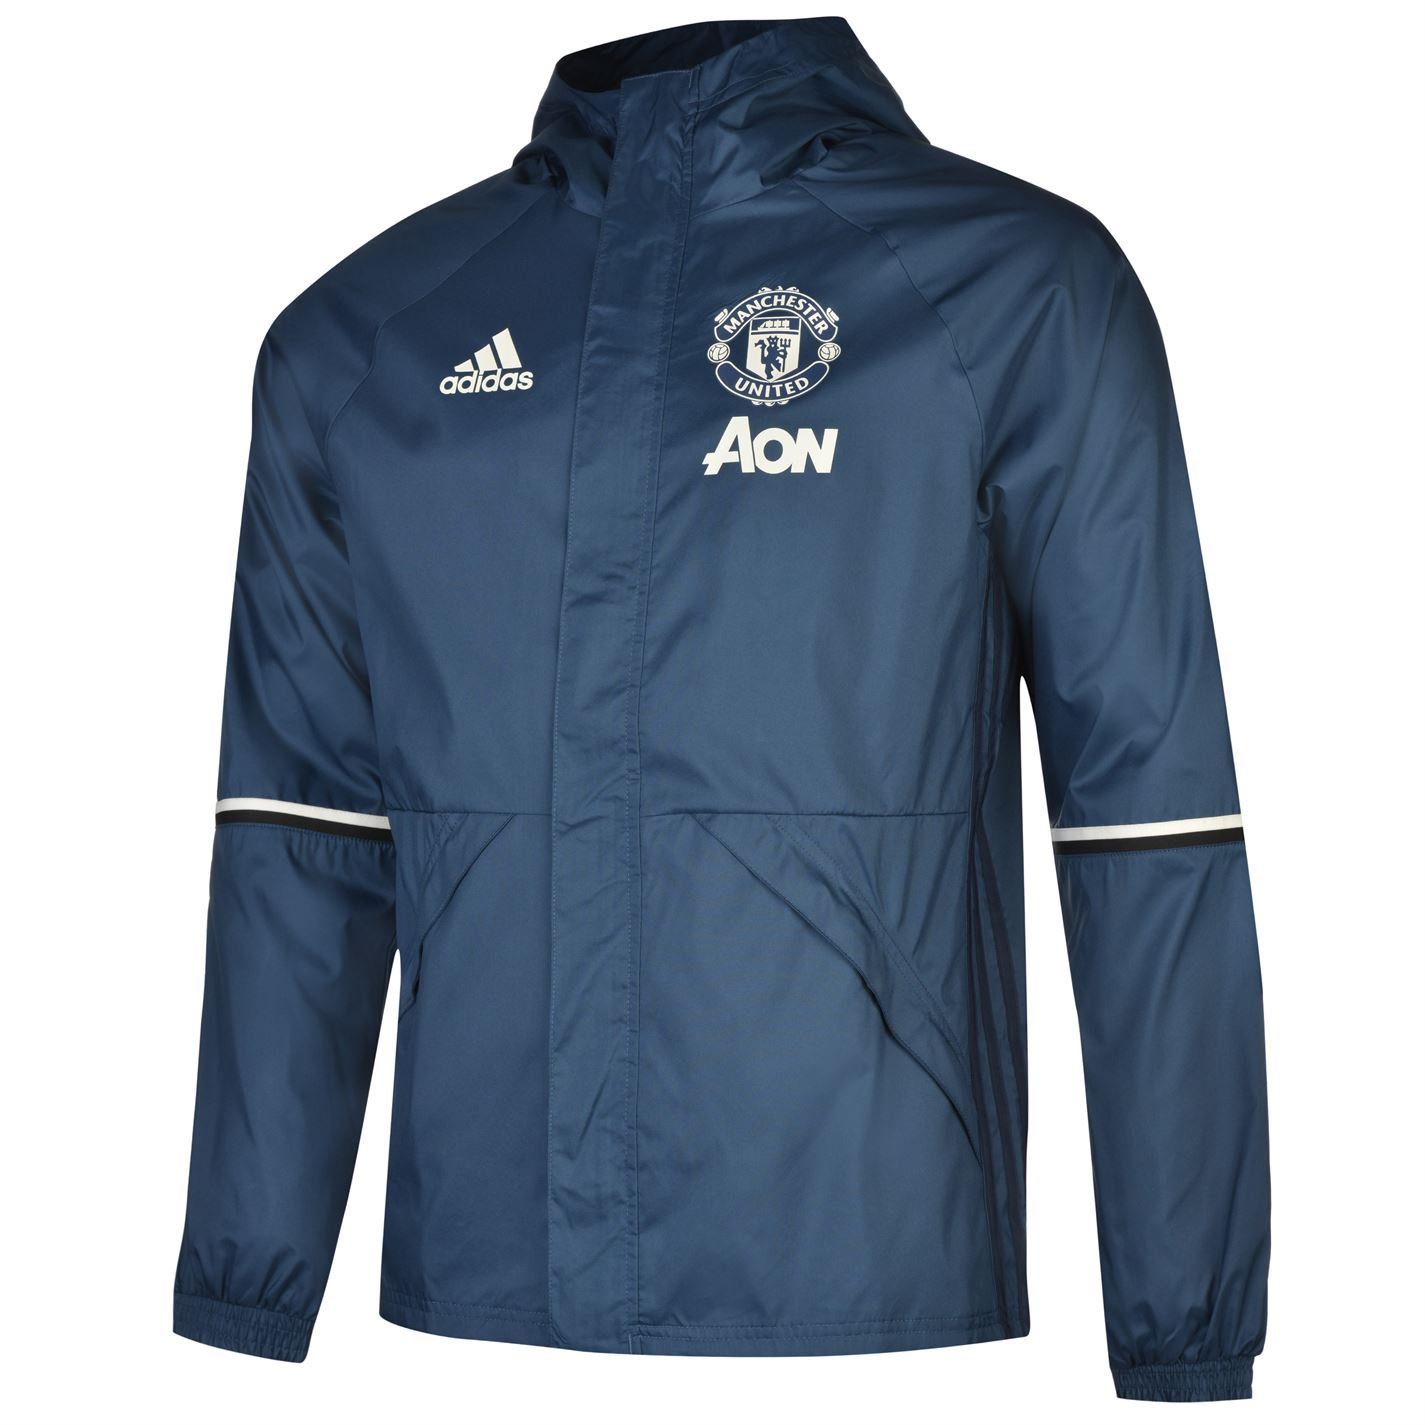 Adidas Manchester United FC Away Jacket 2016 2017 Mens Blue/Navy Football Soccer | EBay